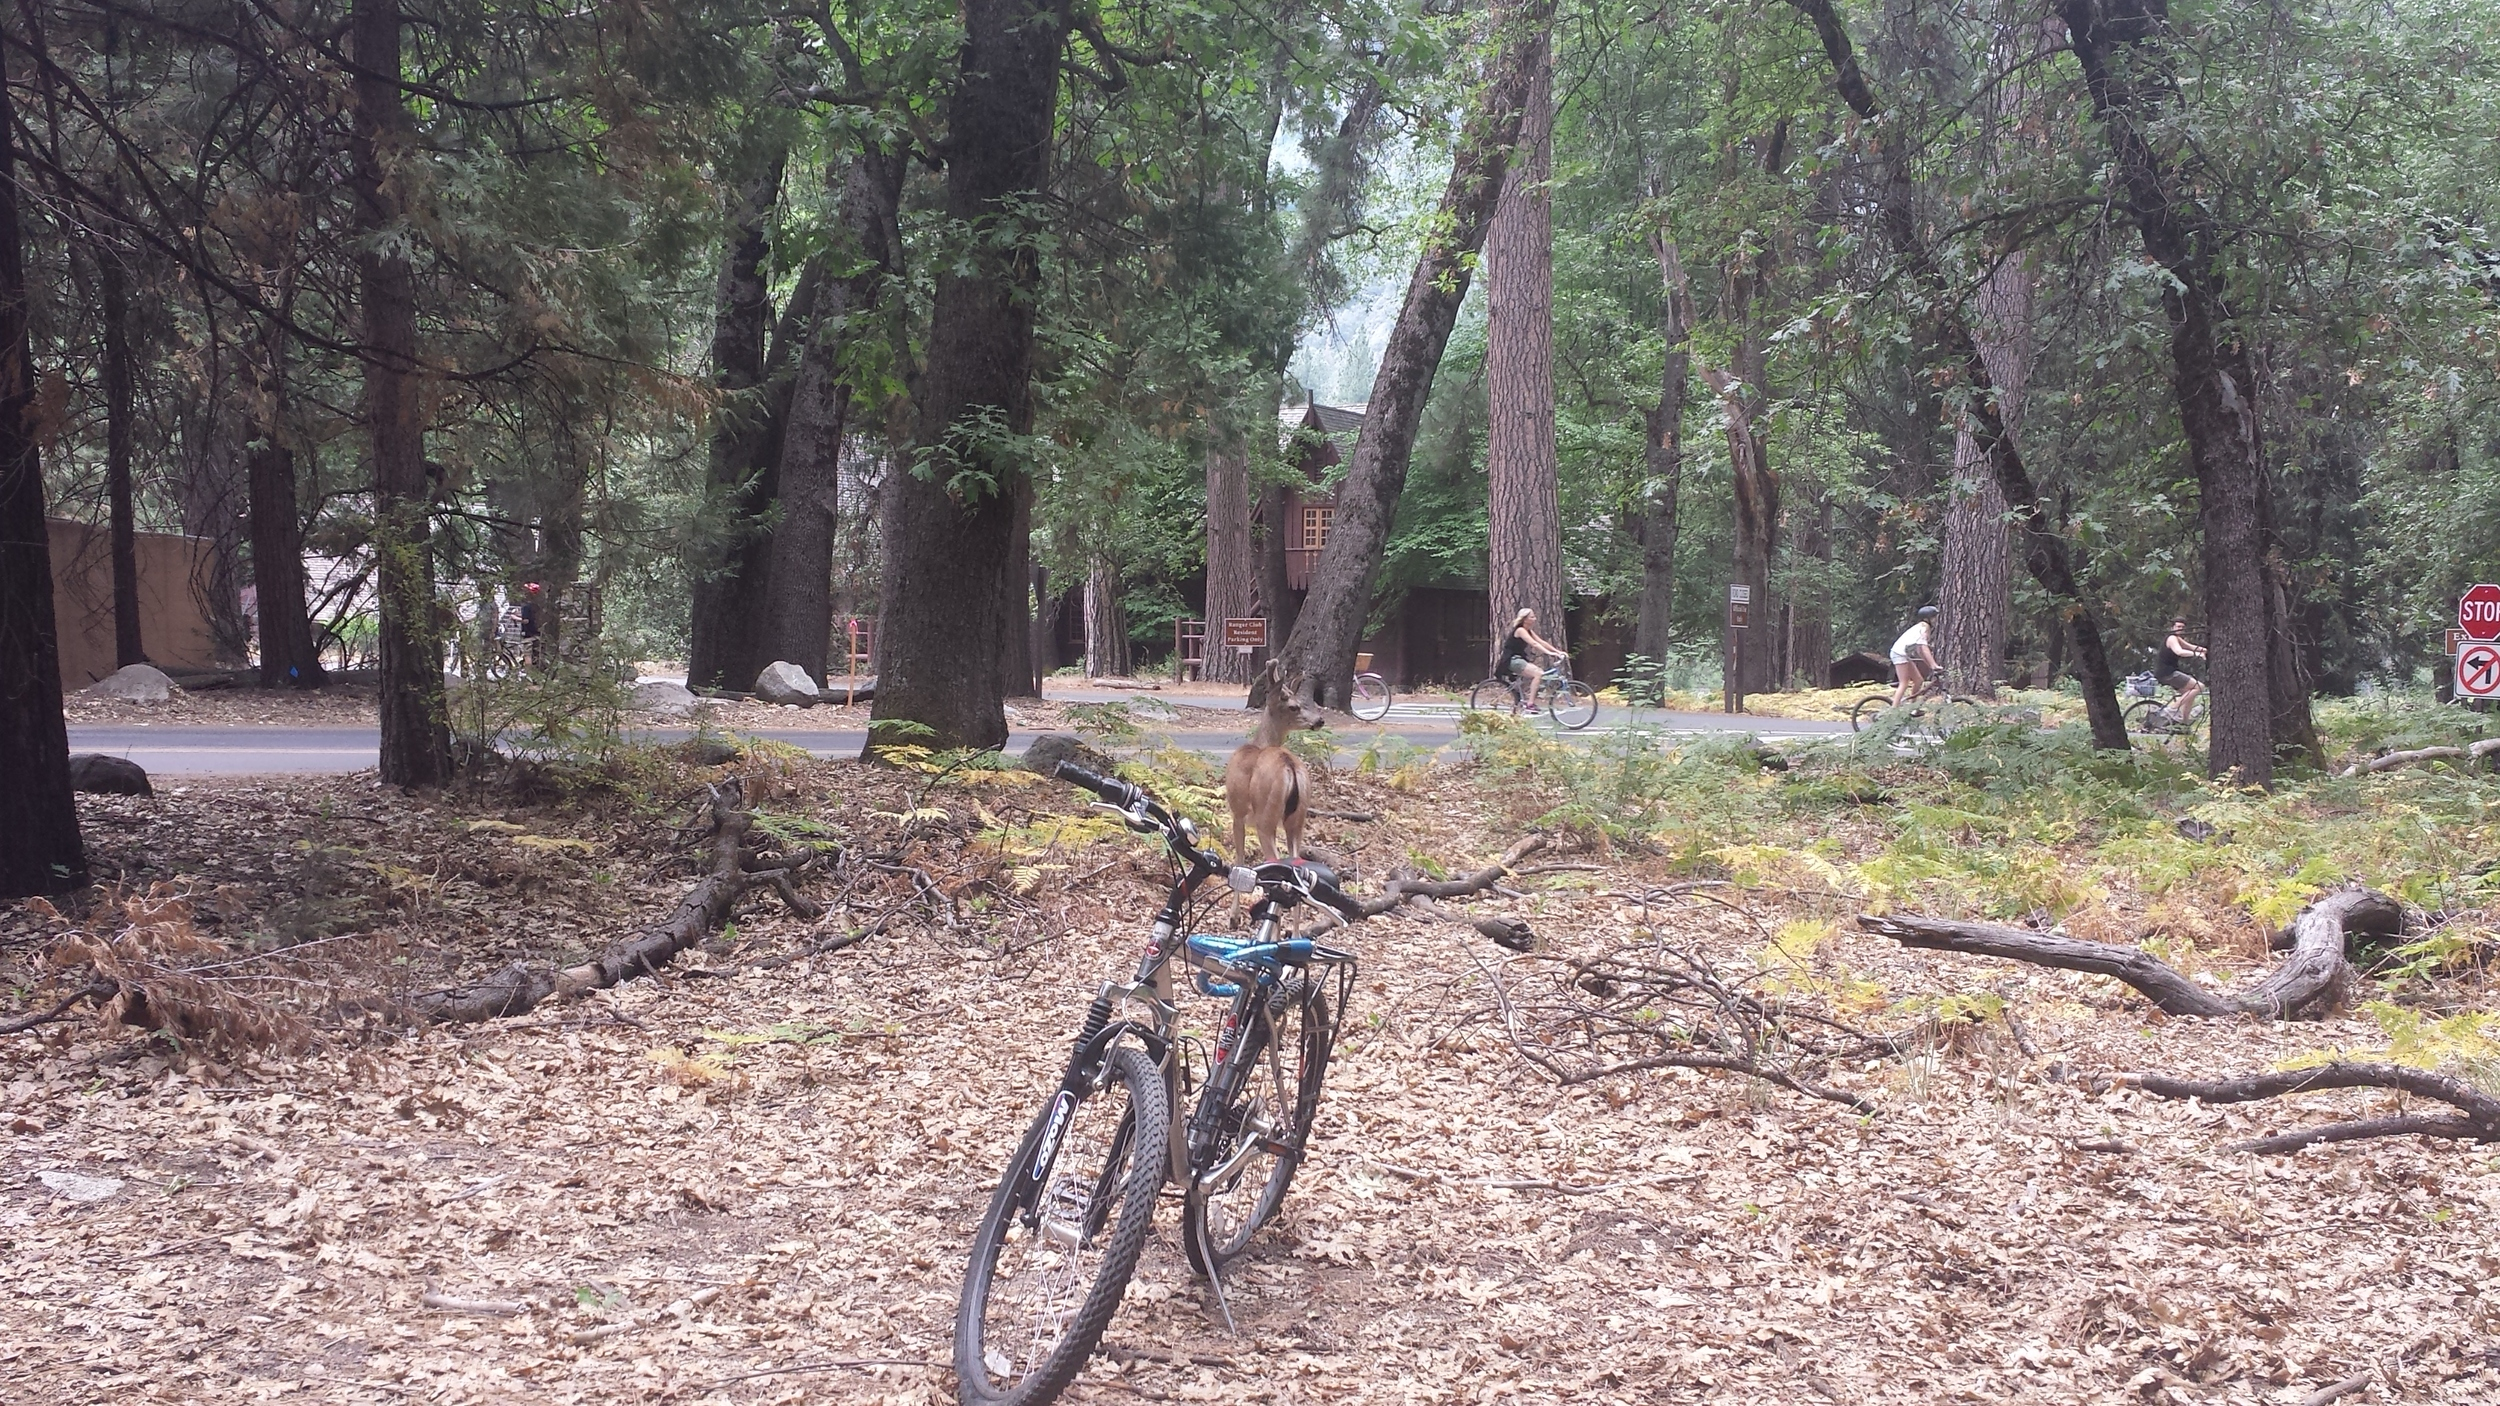 deer looking to steal a bike in front of Yosemite library